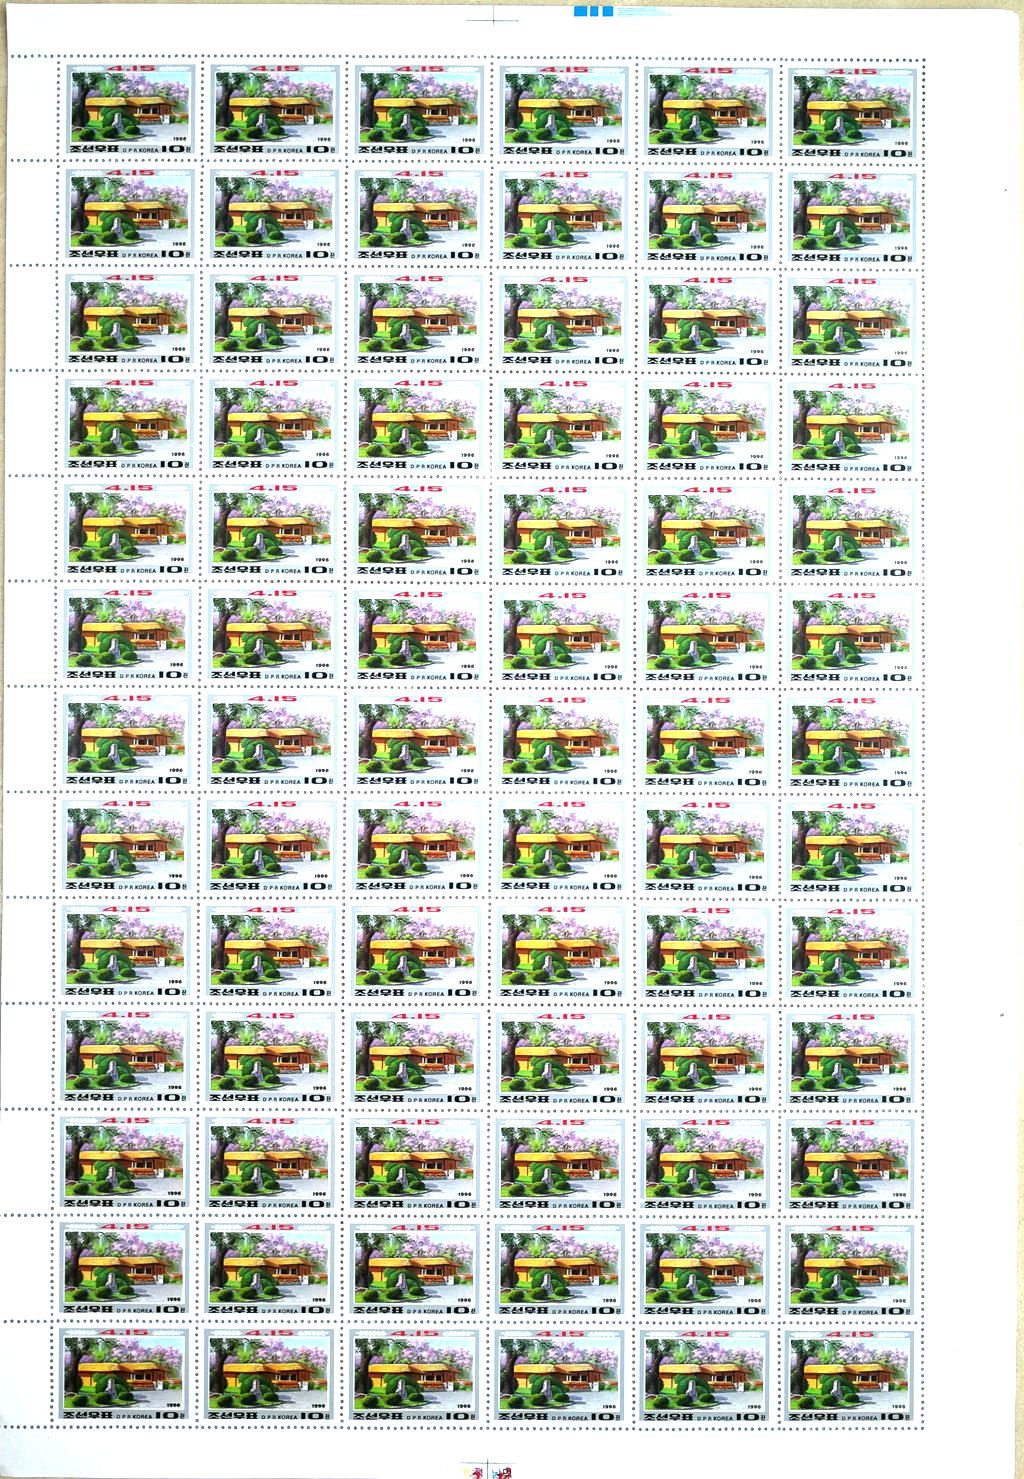 "L4490, Korea ""Kim Il Sung's Birthplace"", Full Sheet of 78 Pcs Stamps, 1996"